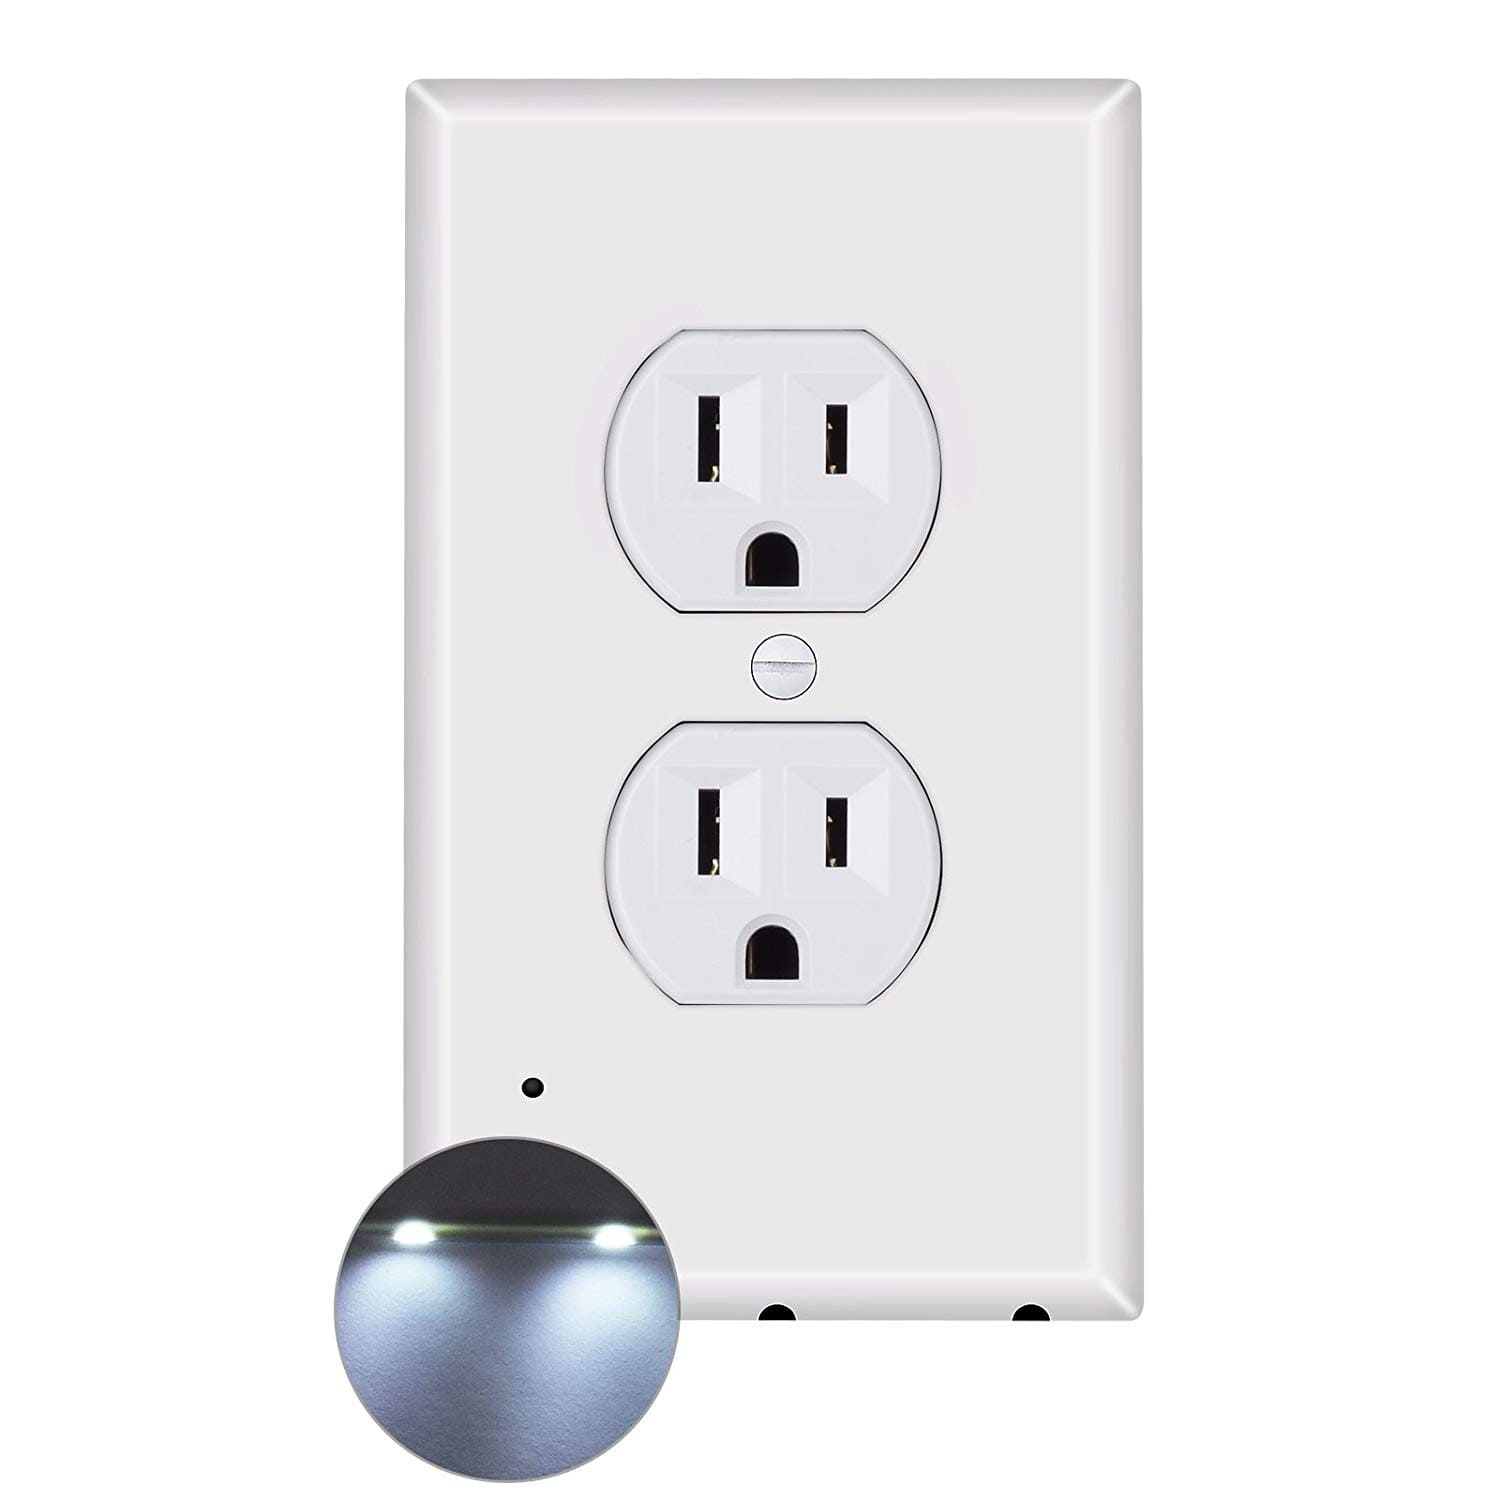 52% OFF Outlet Covers Night Light Plates, Duplex Wall Plate with LED for $4.88